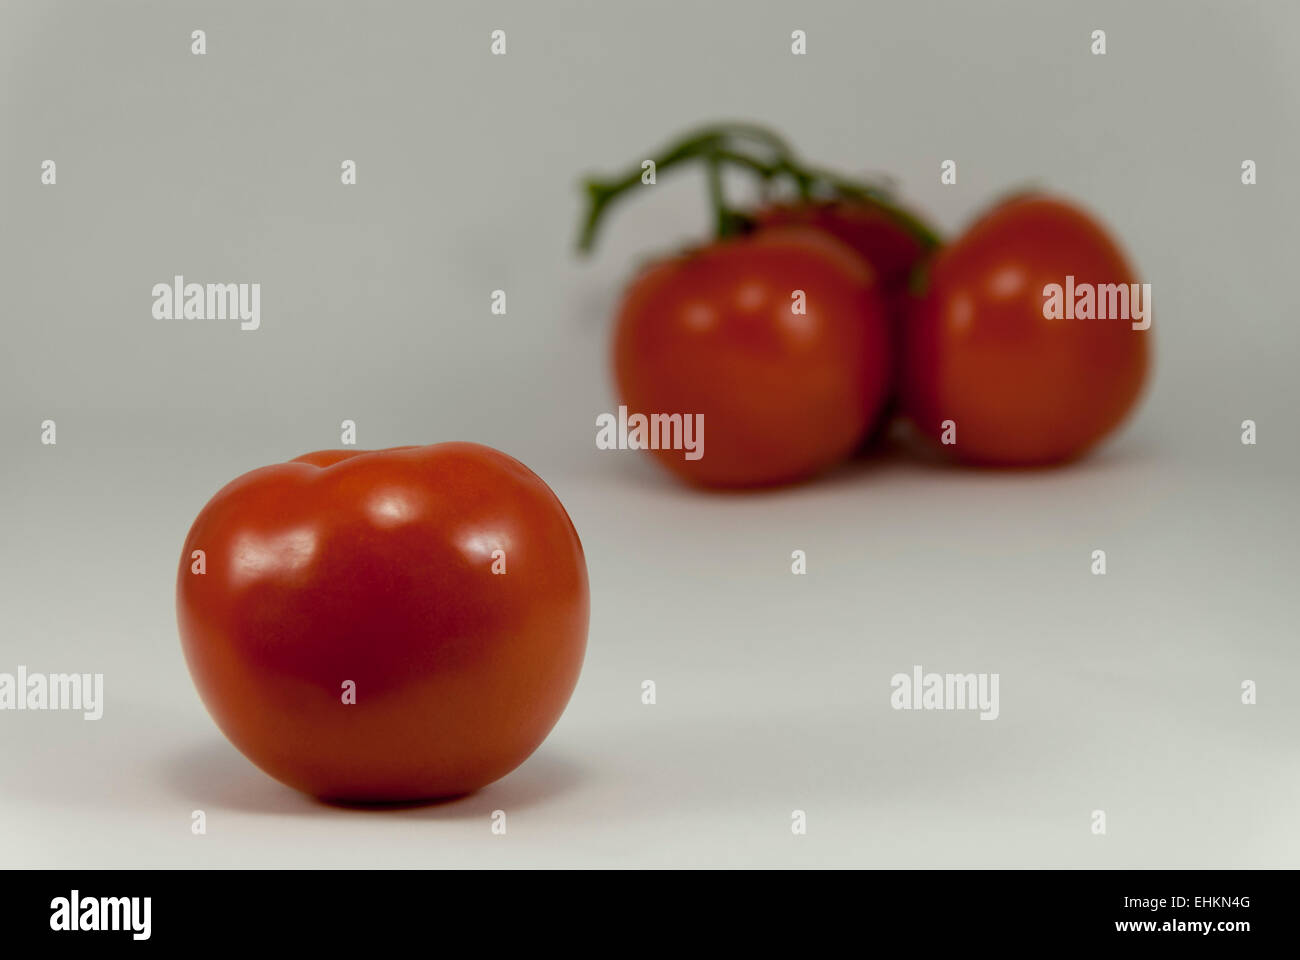 Single ripe plump red tomato backed by blurred grouping of three tomatoes with white background. - Stock Image